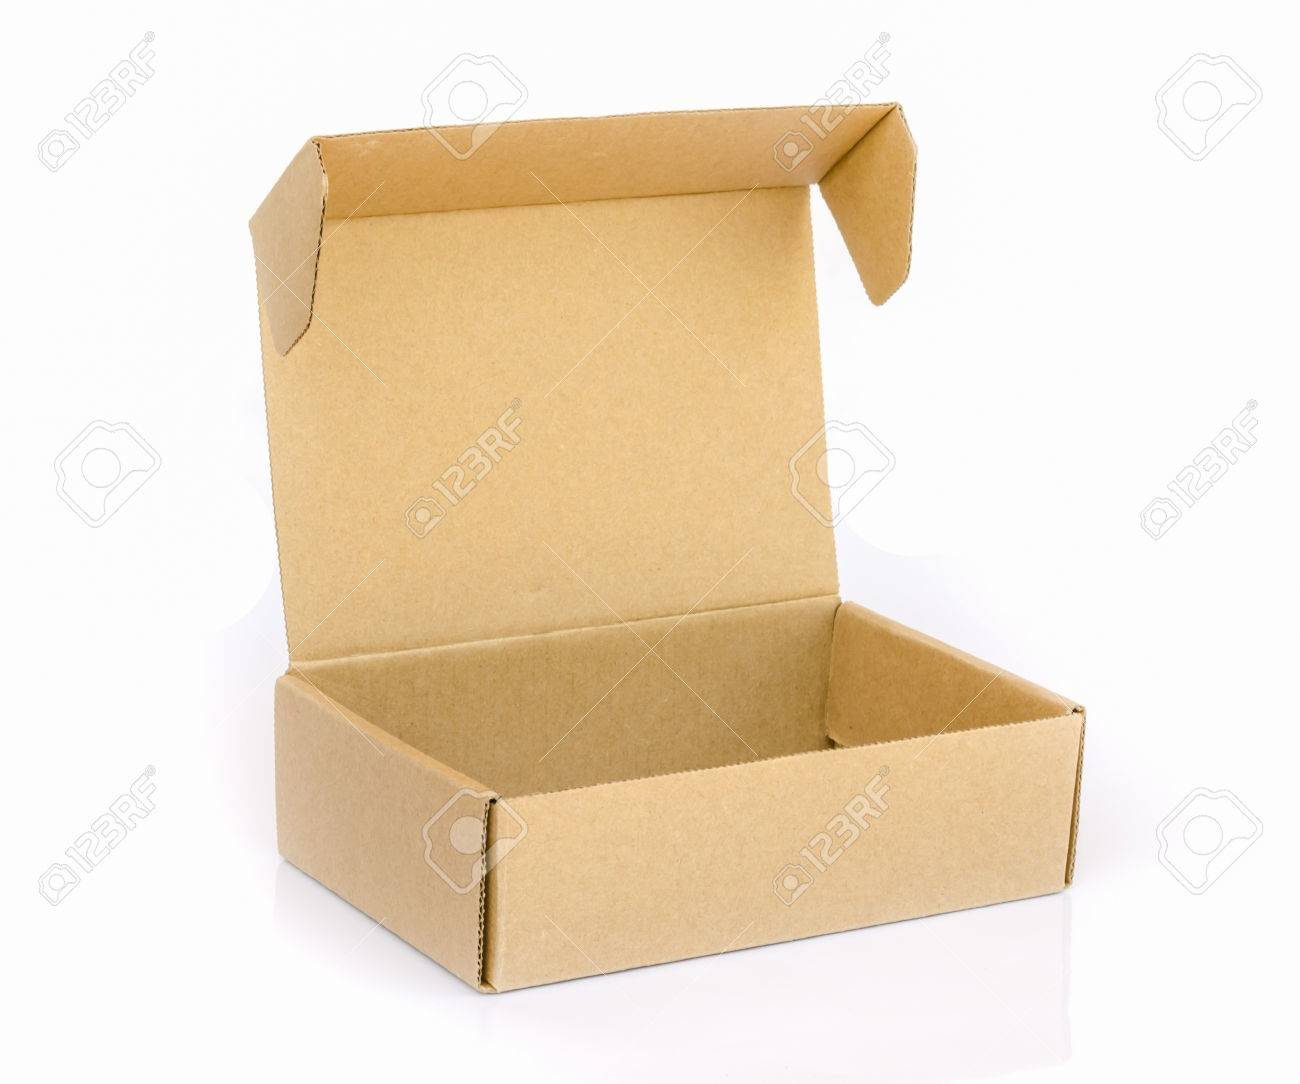 cardboard box isolated on a white background. - 38725917